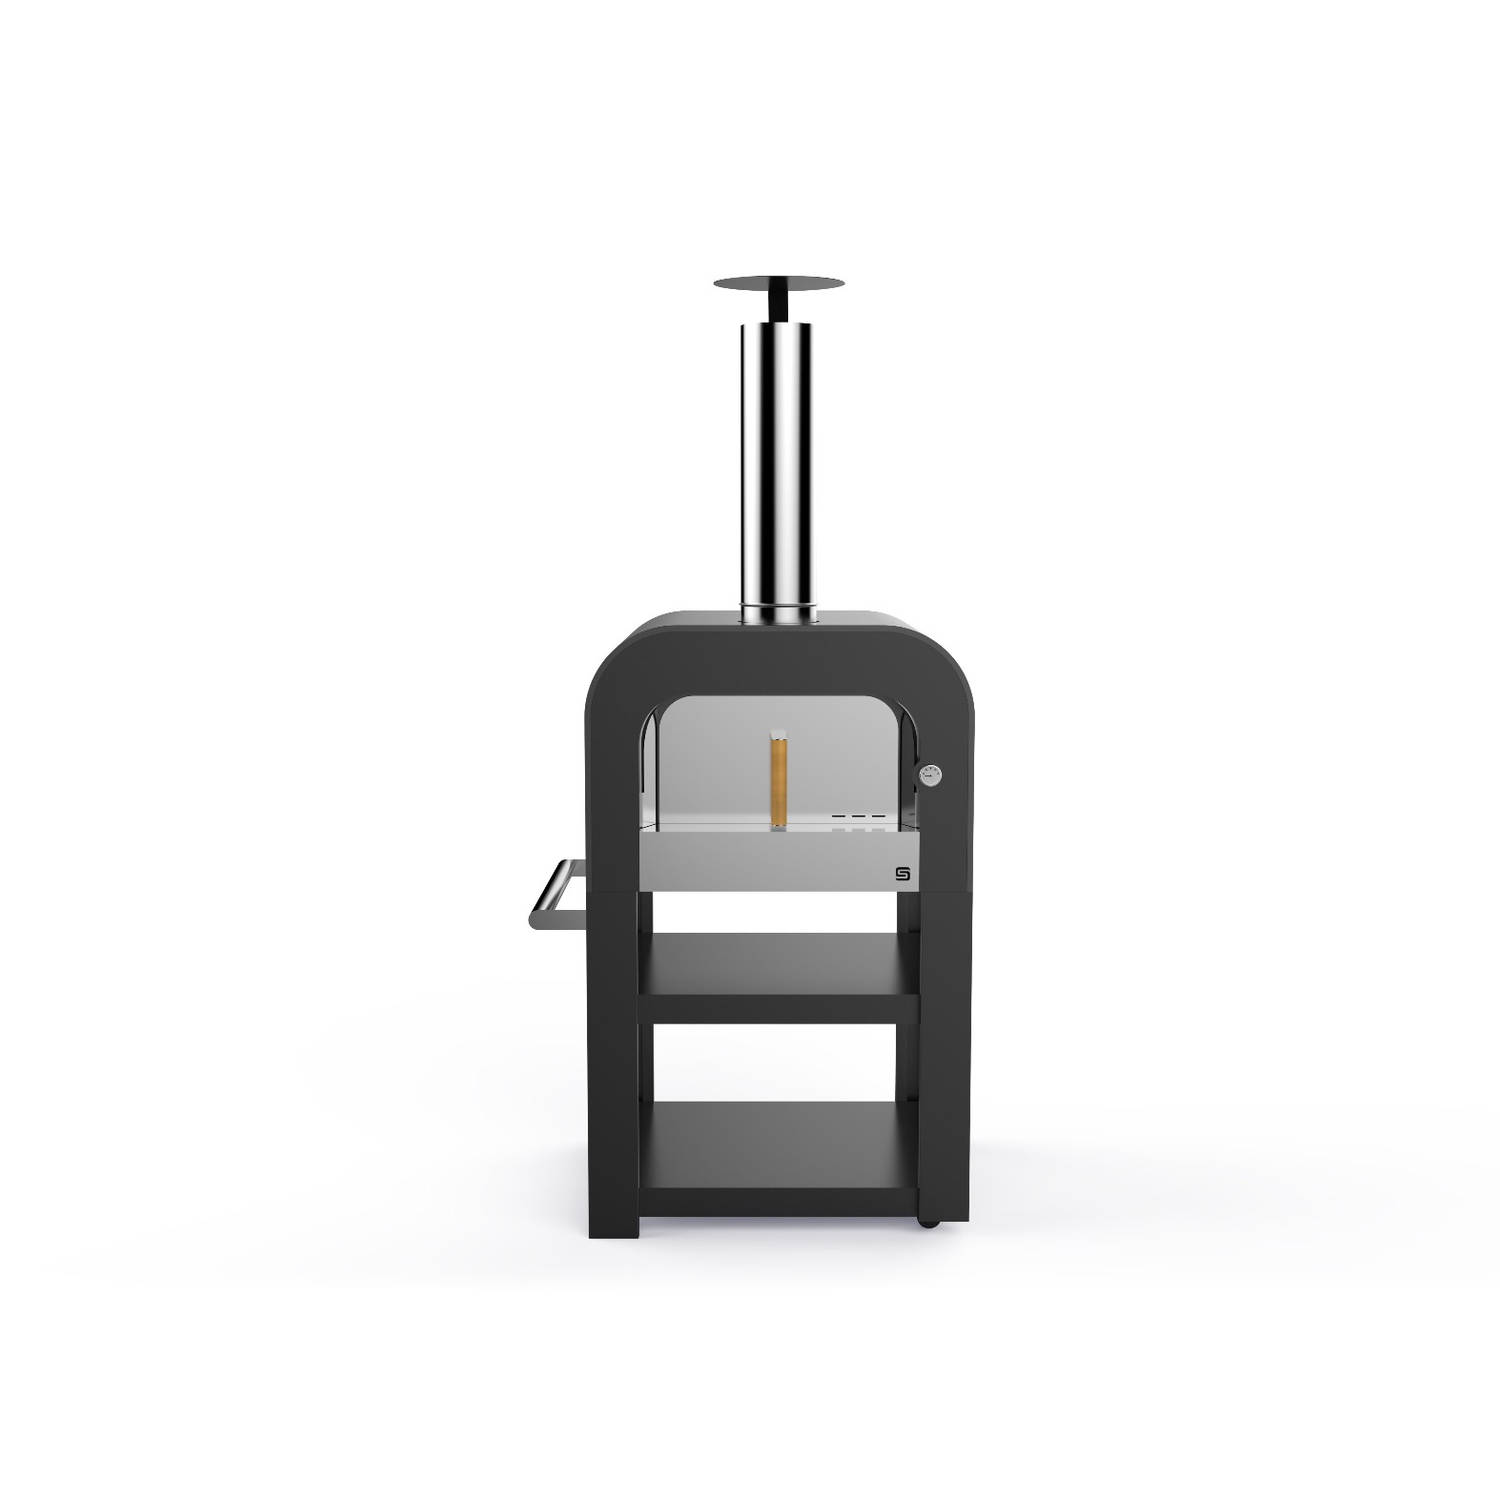 Sarom Fuoco Pizzaoven Fast Oven Houtskool Hout Antraciet